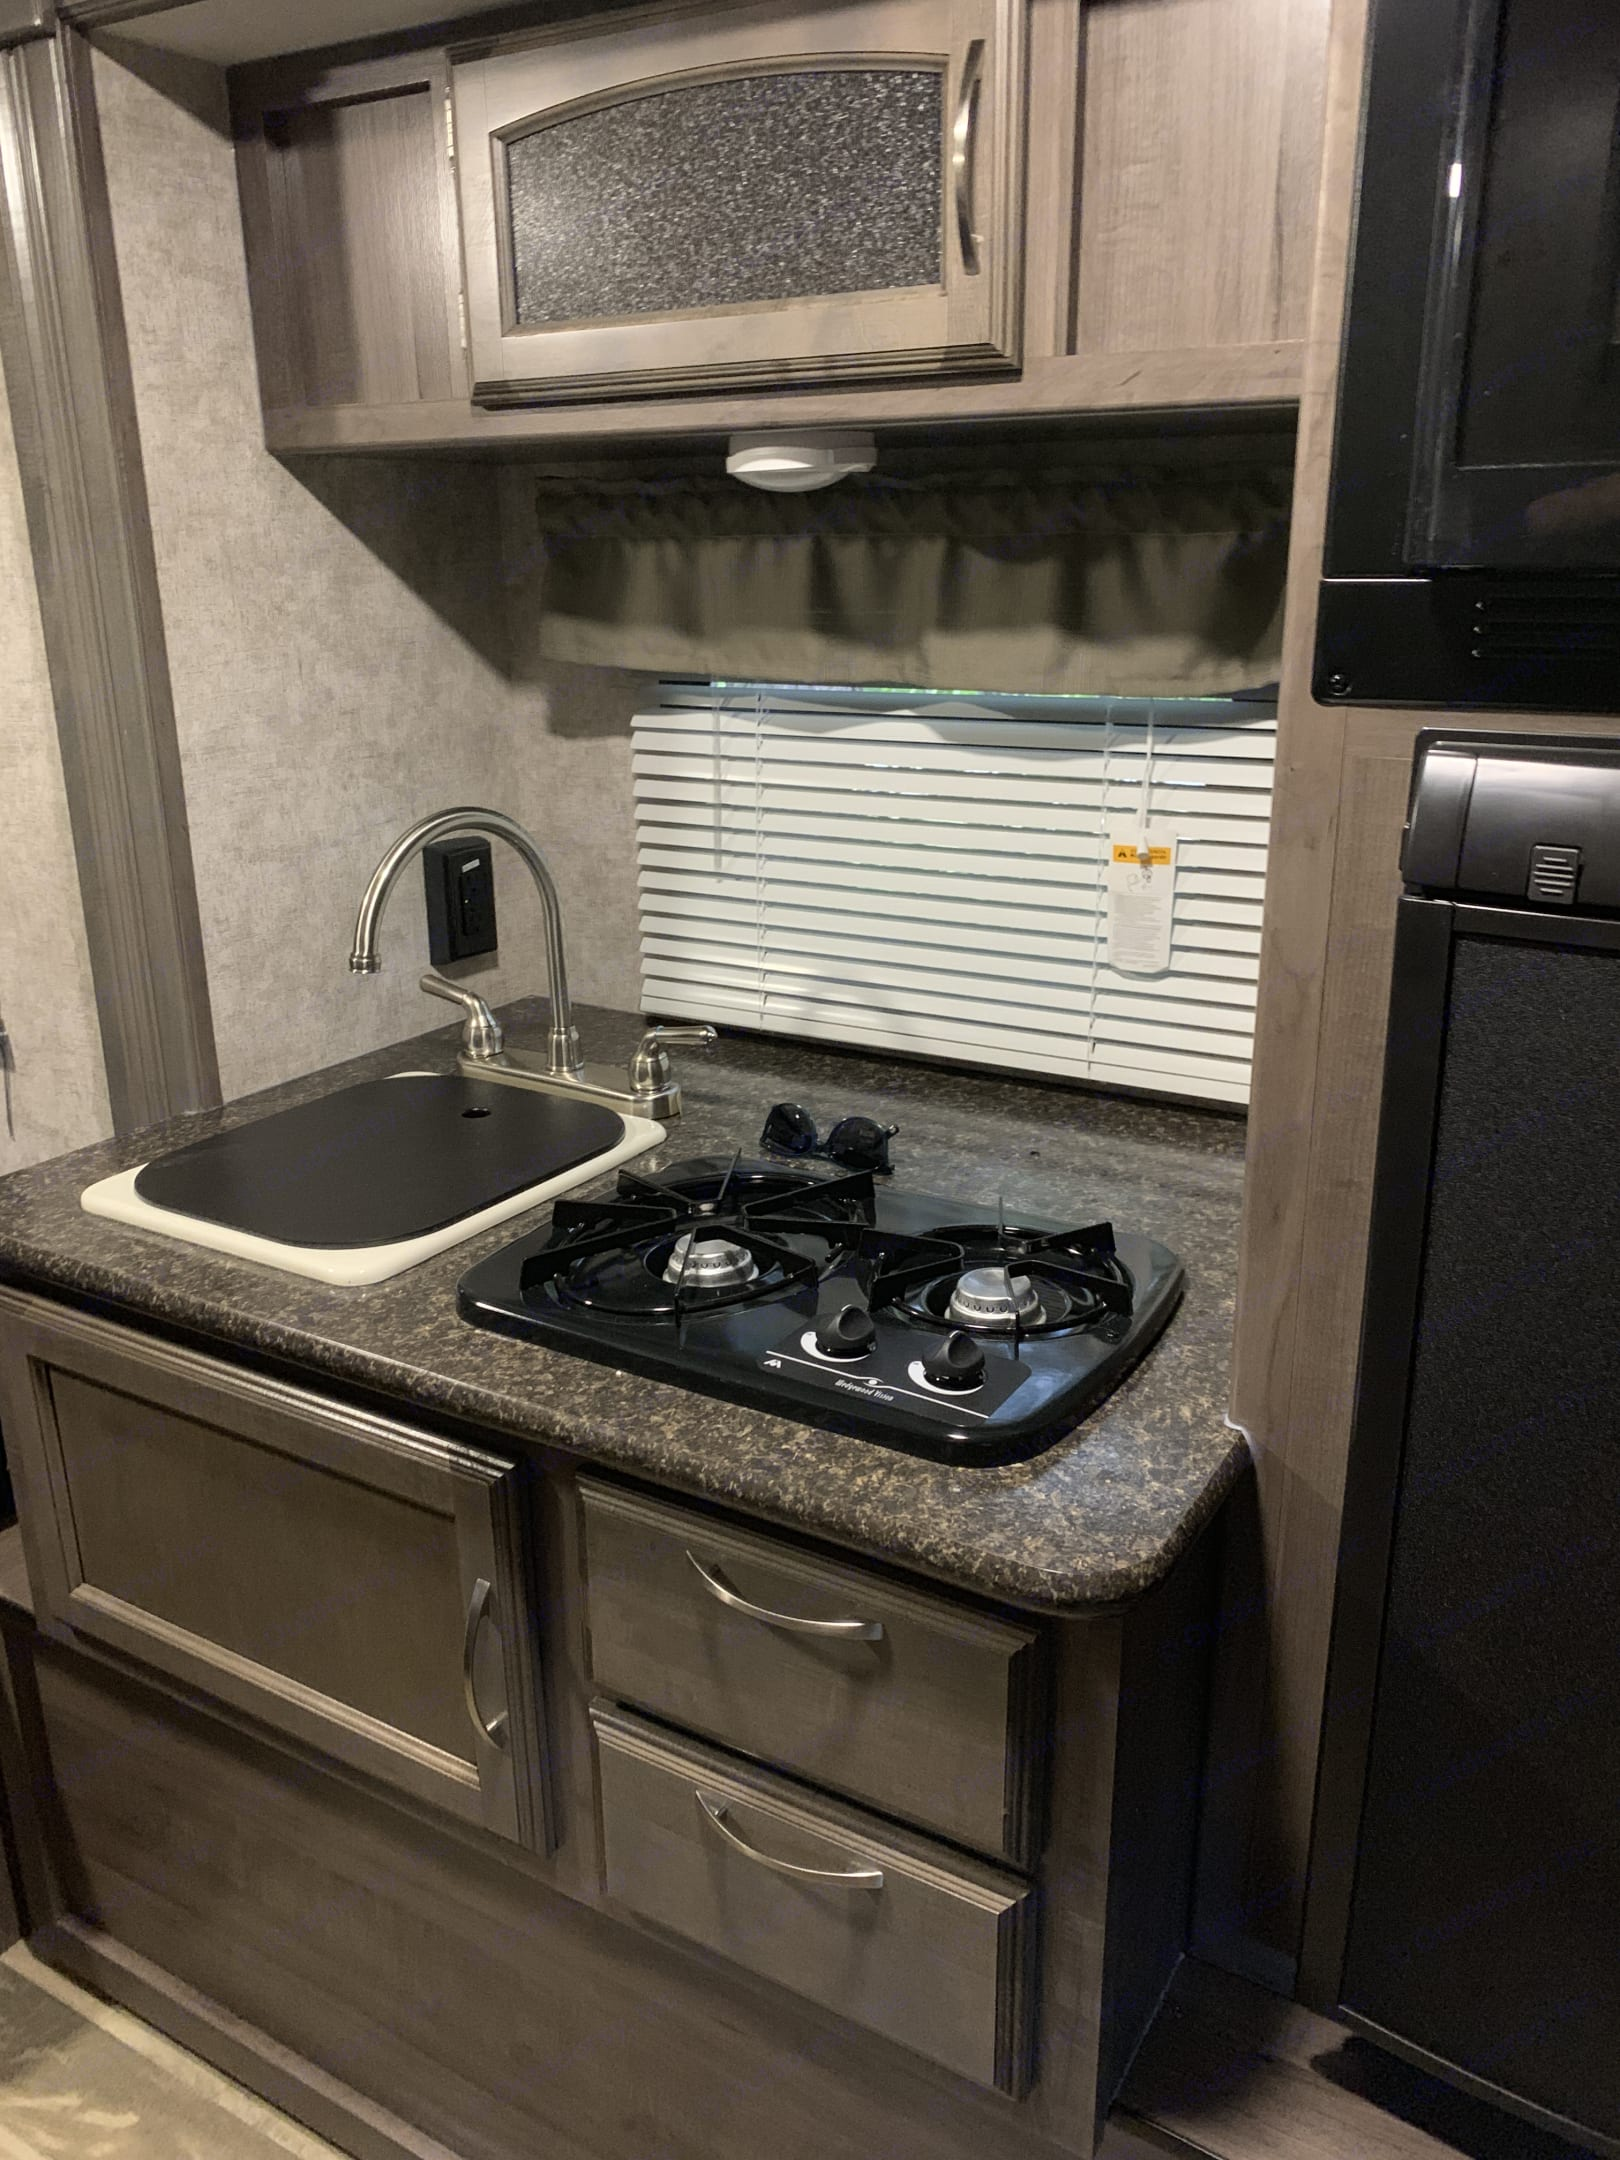 Kitchen including sink, microwave/convection oven, and fridge.. Winnebago Winnie Drop 2018